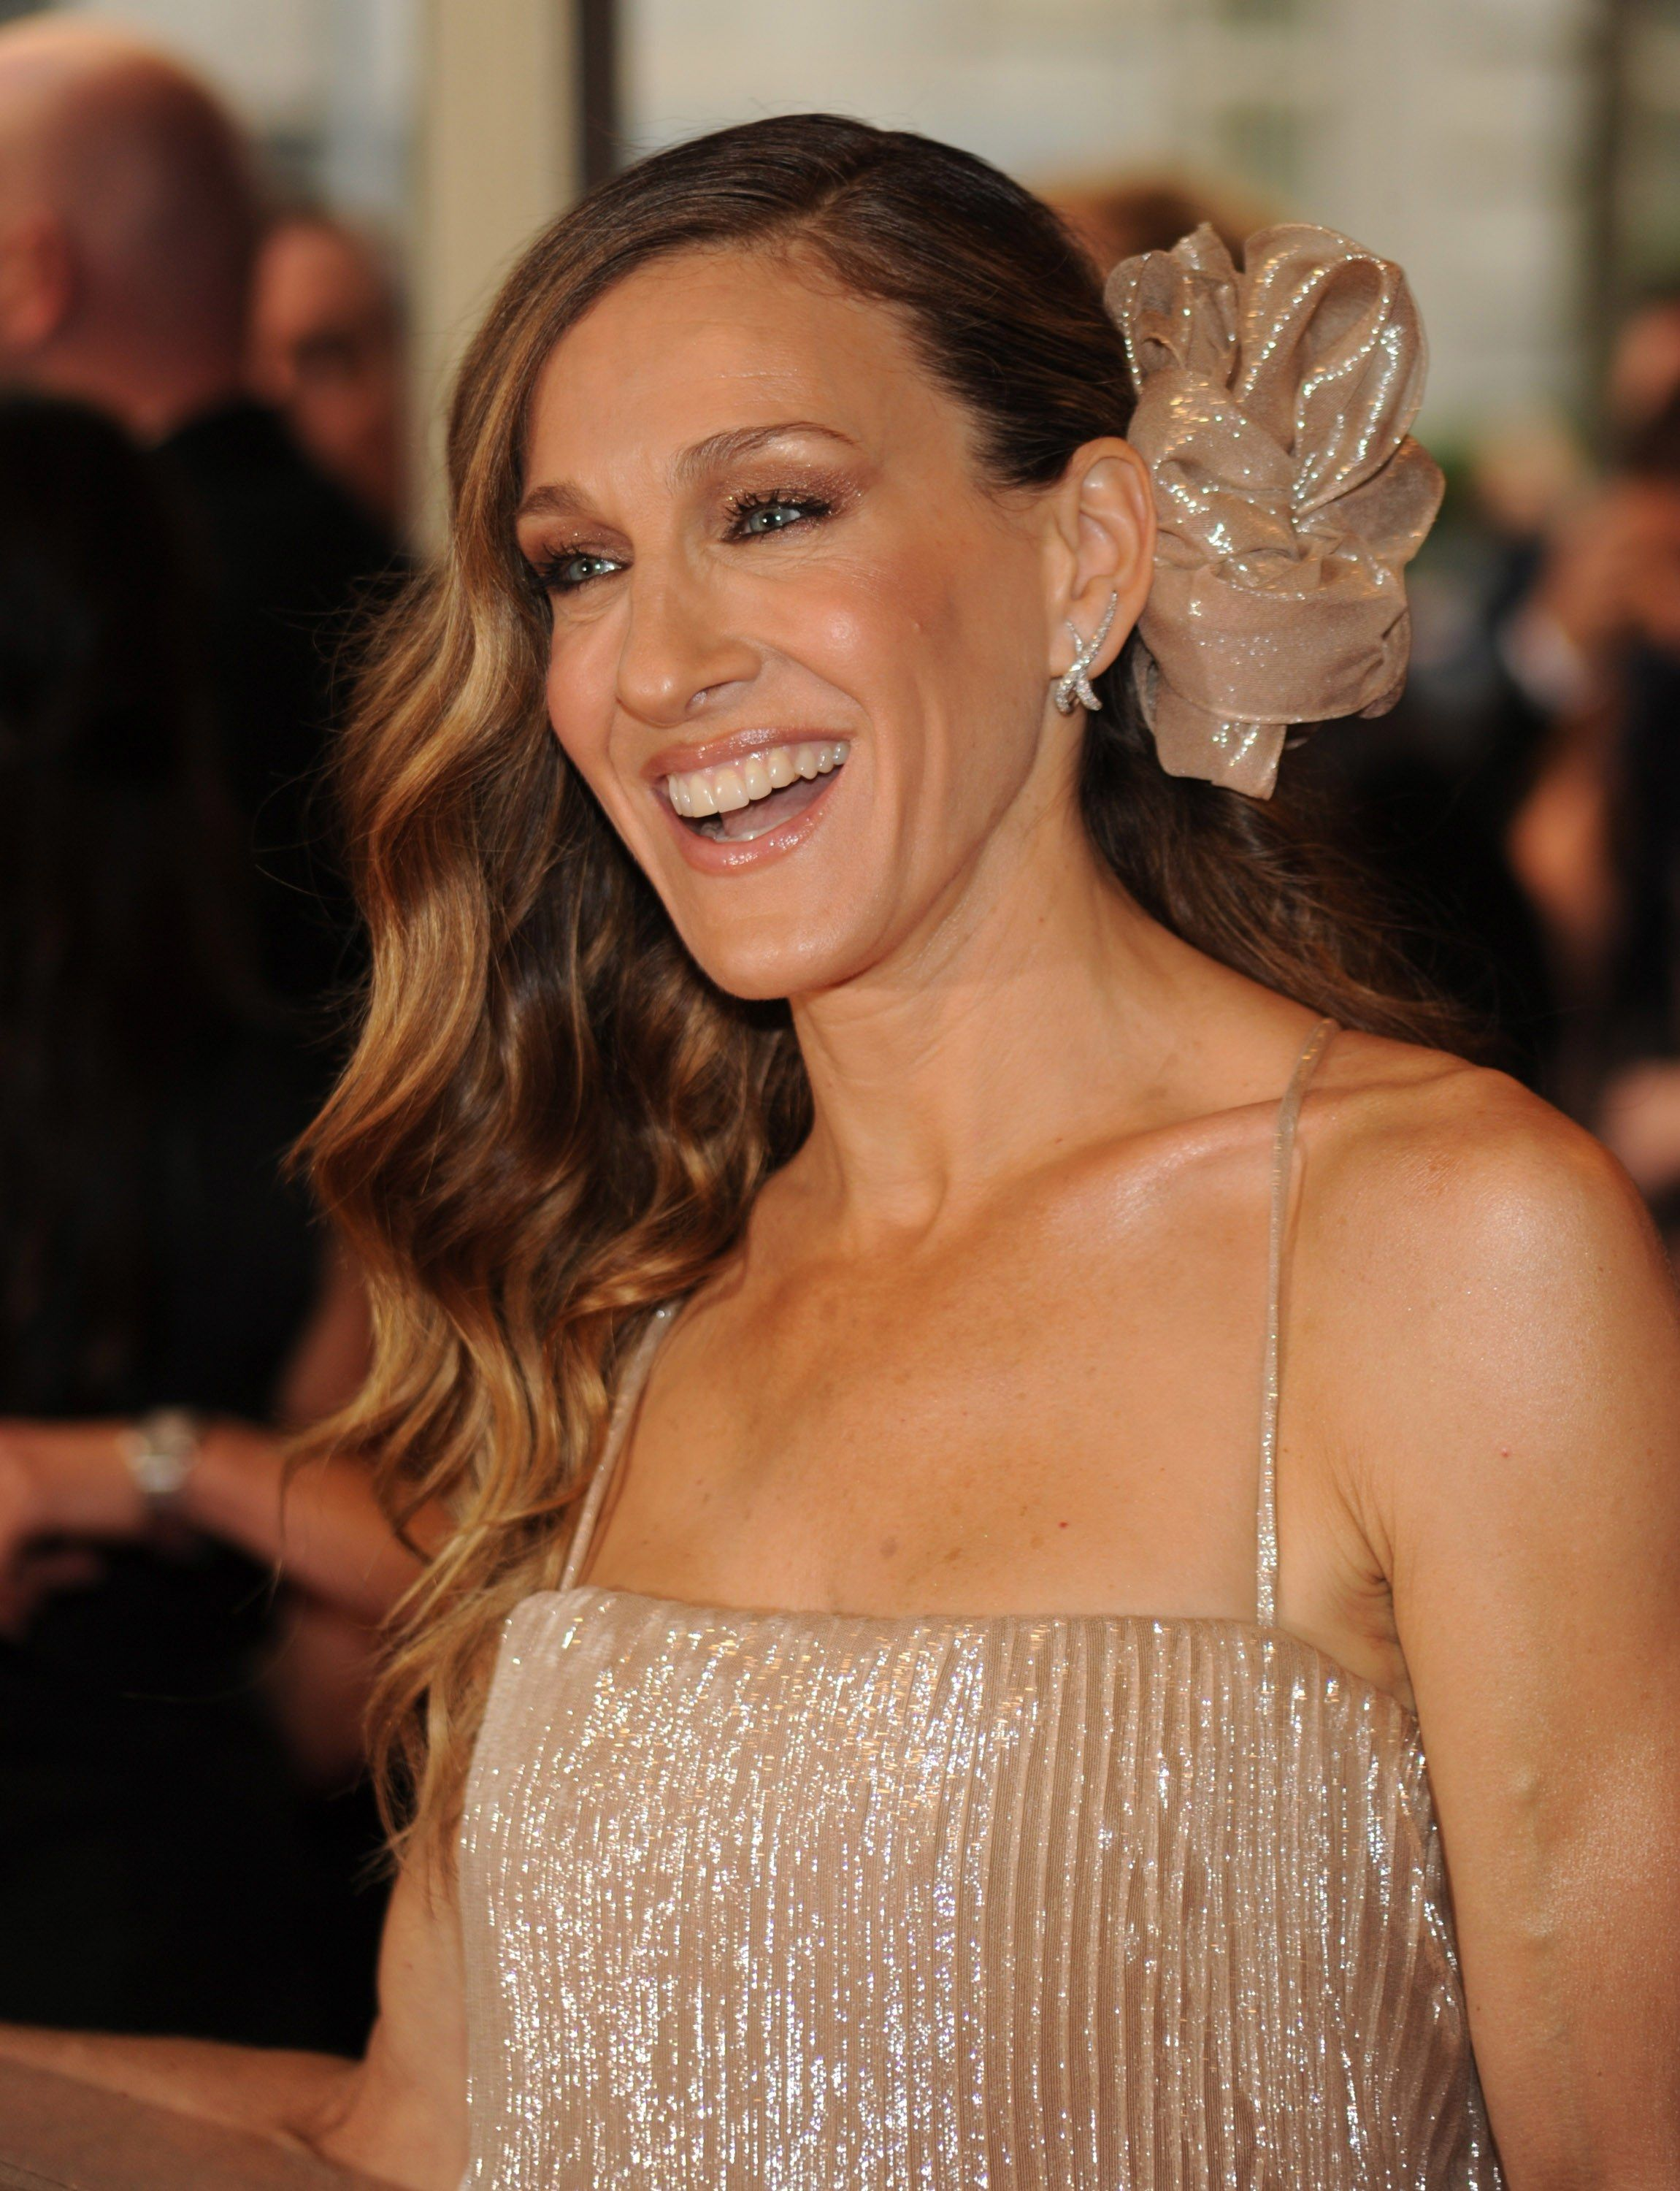 Sarah Jessica Parker at the Met Gala: See the Star's Ultra-Committed Red Carpet Looks Photos   W Magazine